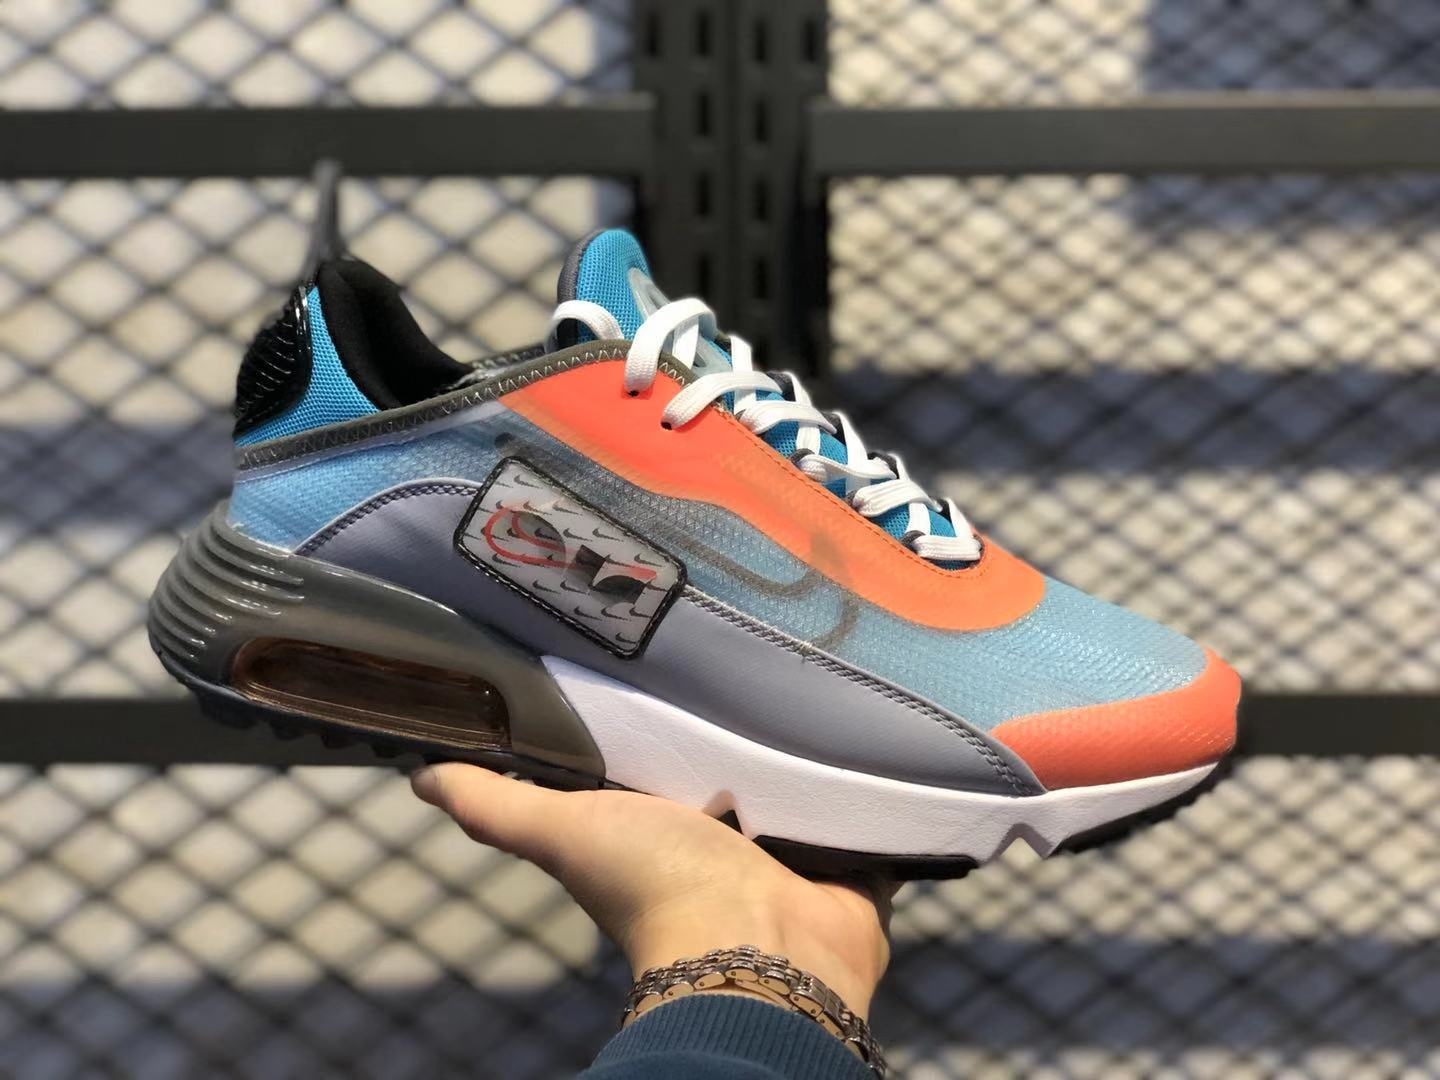 Nike Air Max 2090 White/Orange-Lake Blue Athletic Sneakers In Stock CQ7630-400